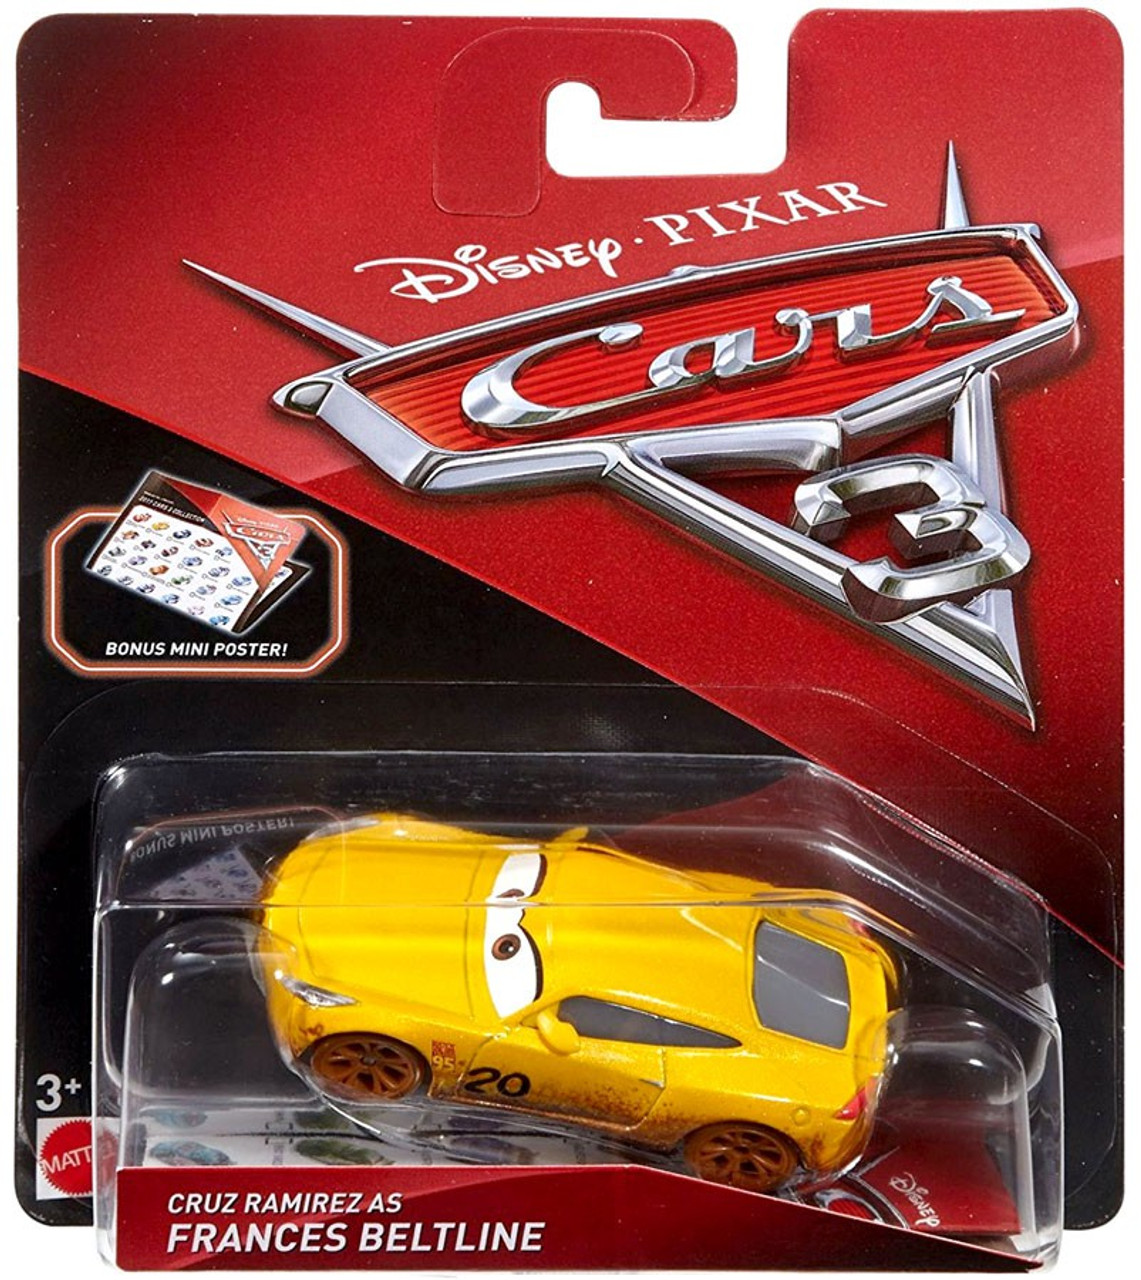 Disney Pixar Cars Cars 3 Cruz Ramirez As Frances Beltline 155